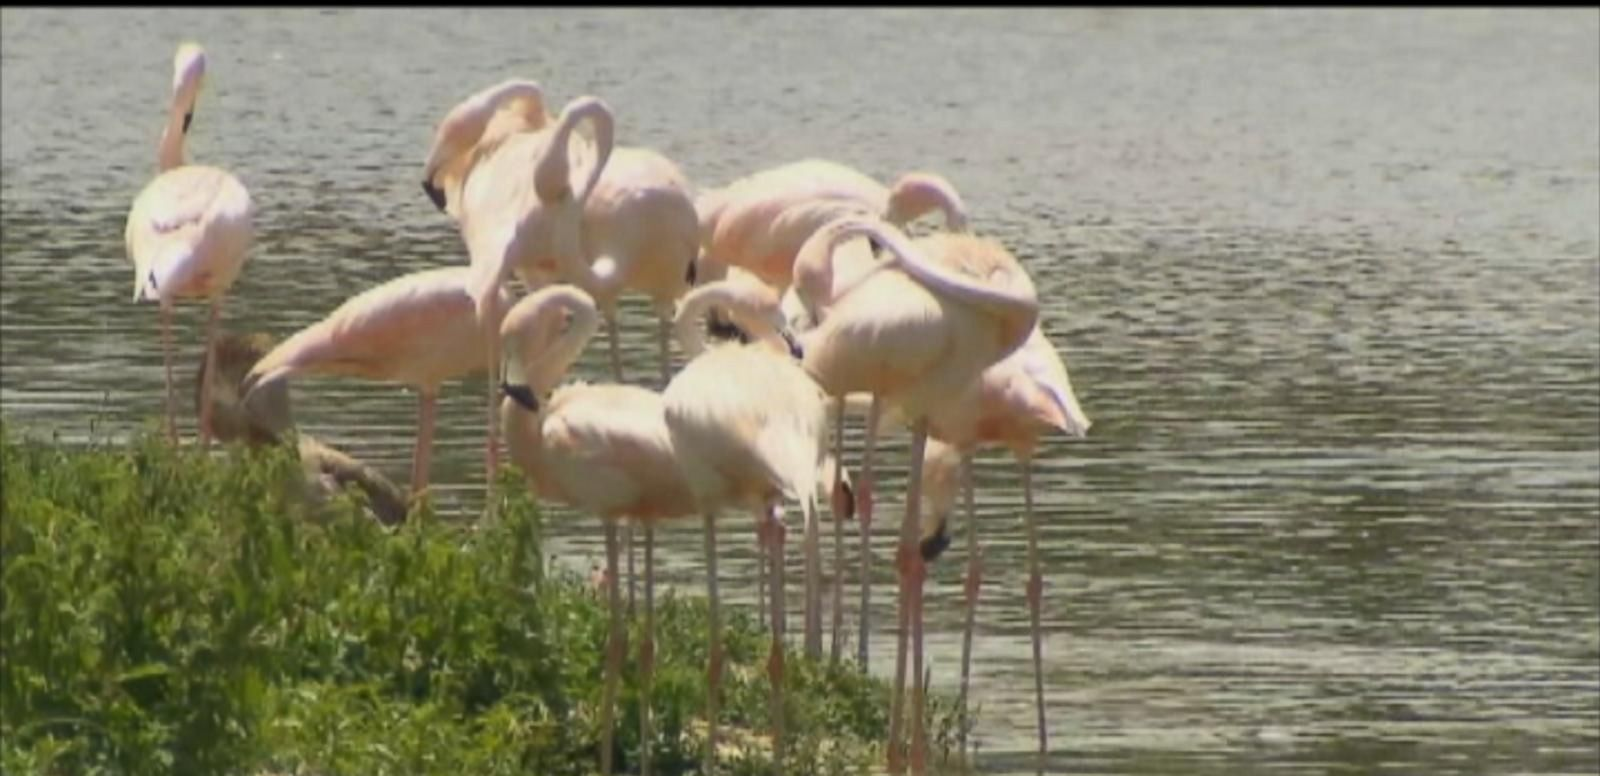 VIDEO: Baby Flamingos Stolen From Florida's Hialeah Park